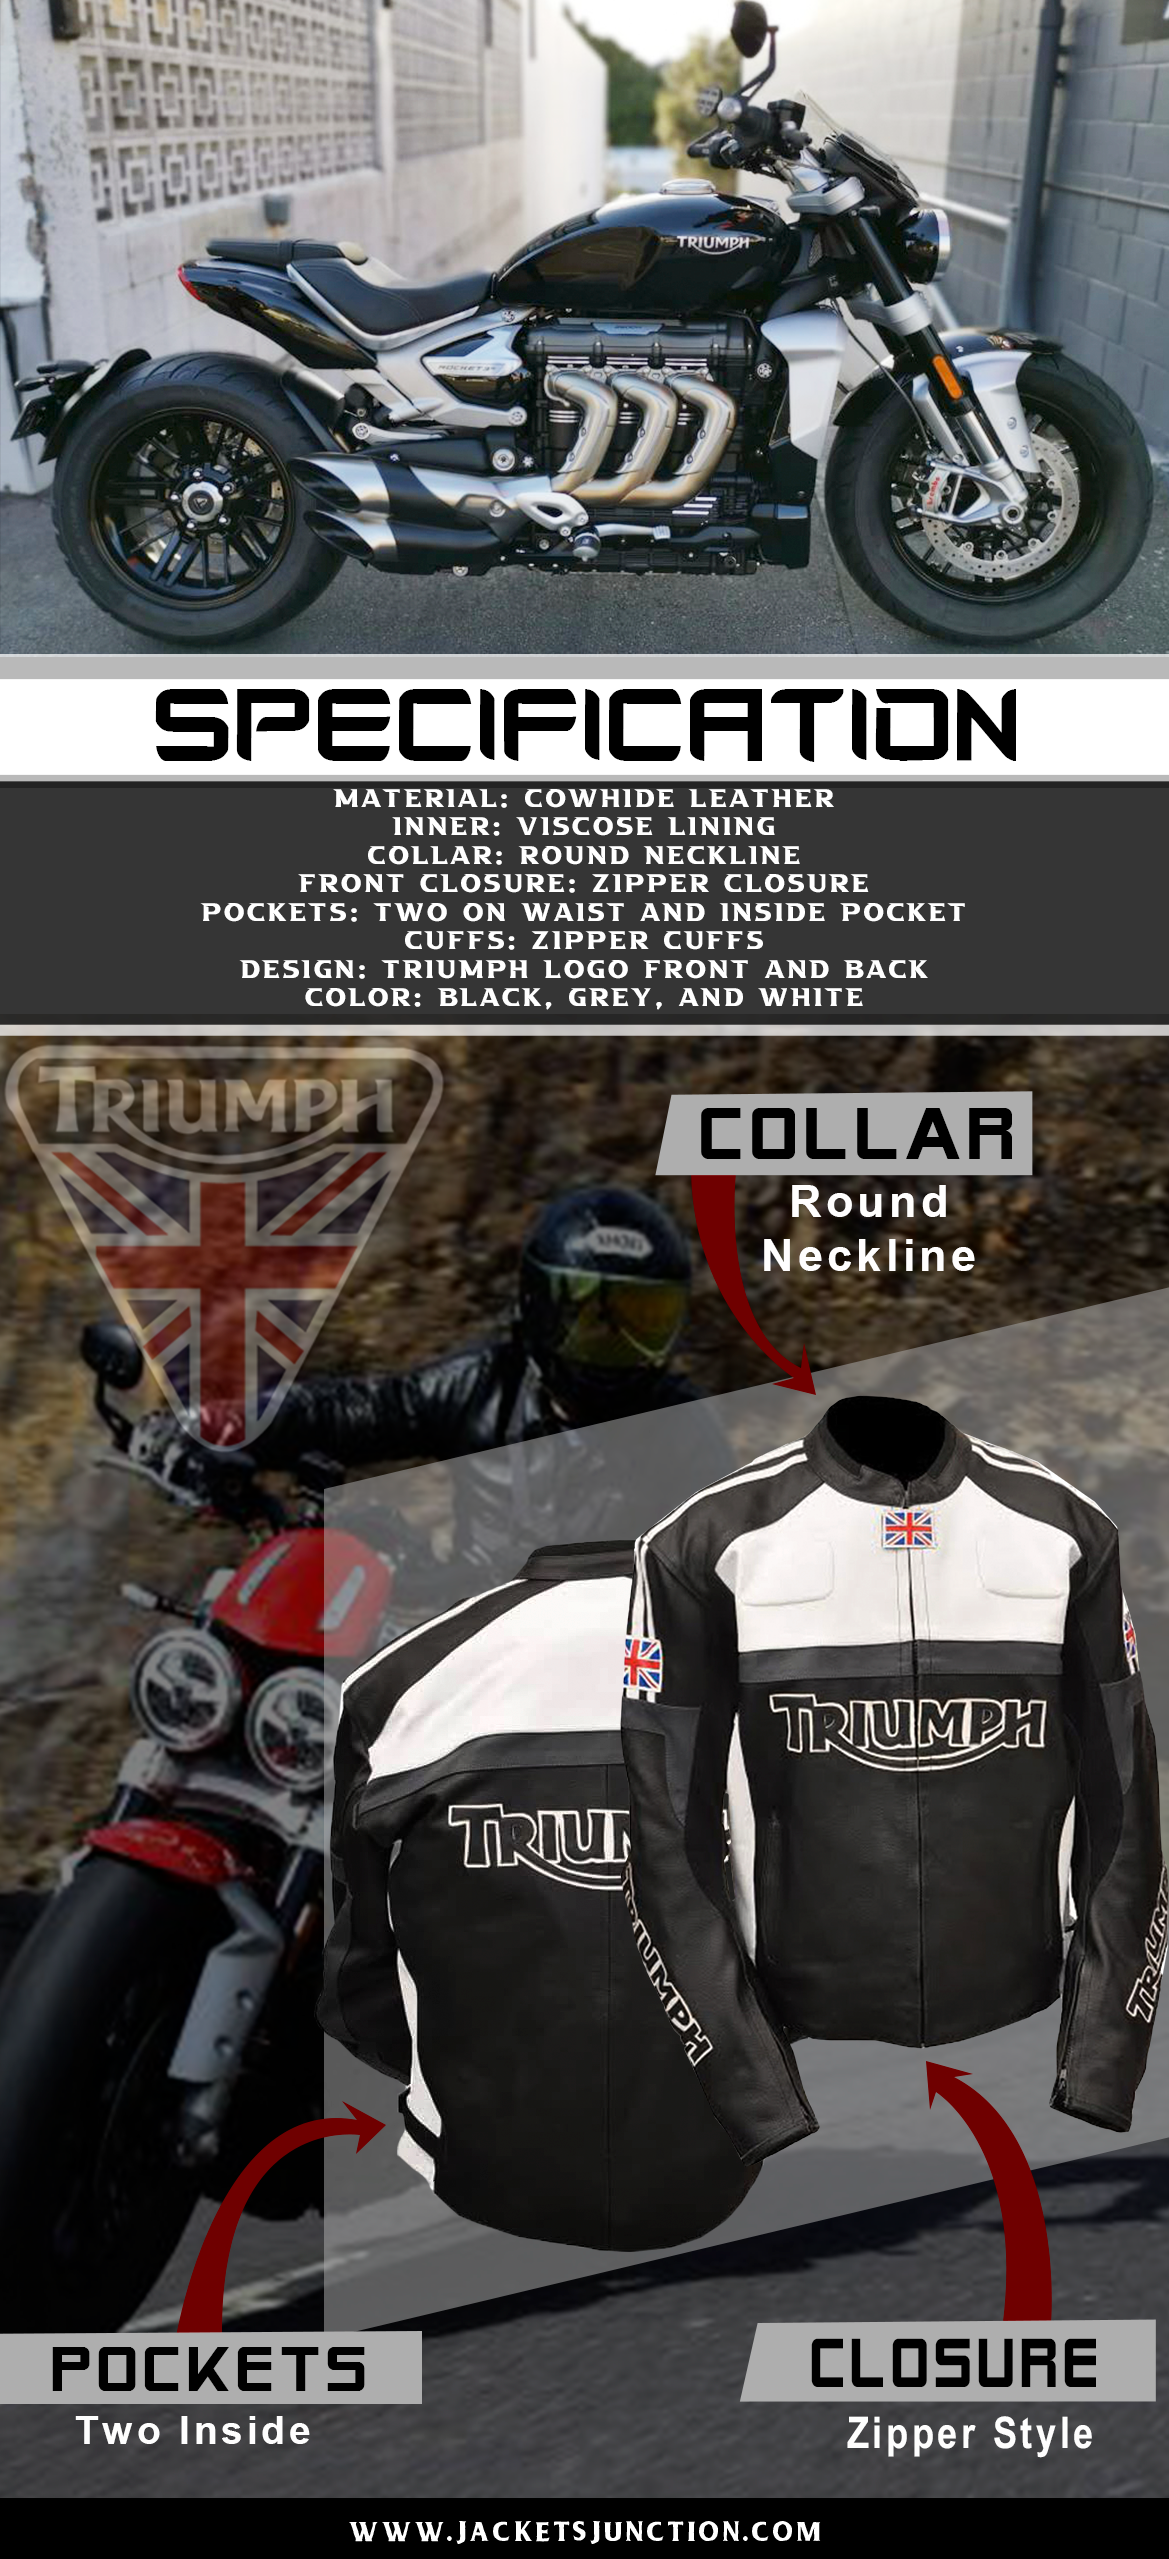 Mens Triumph Motorcycle Racing Biker Leather Jacket infographic